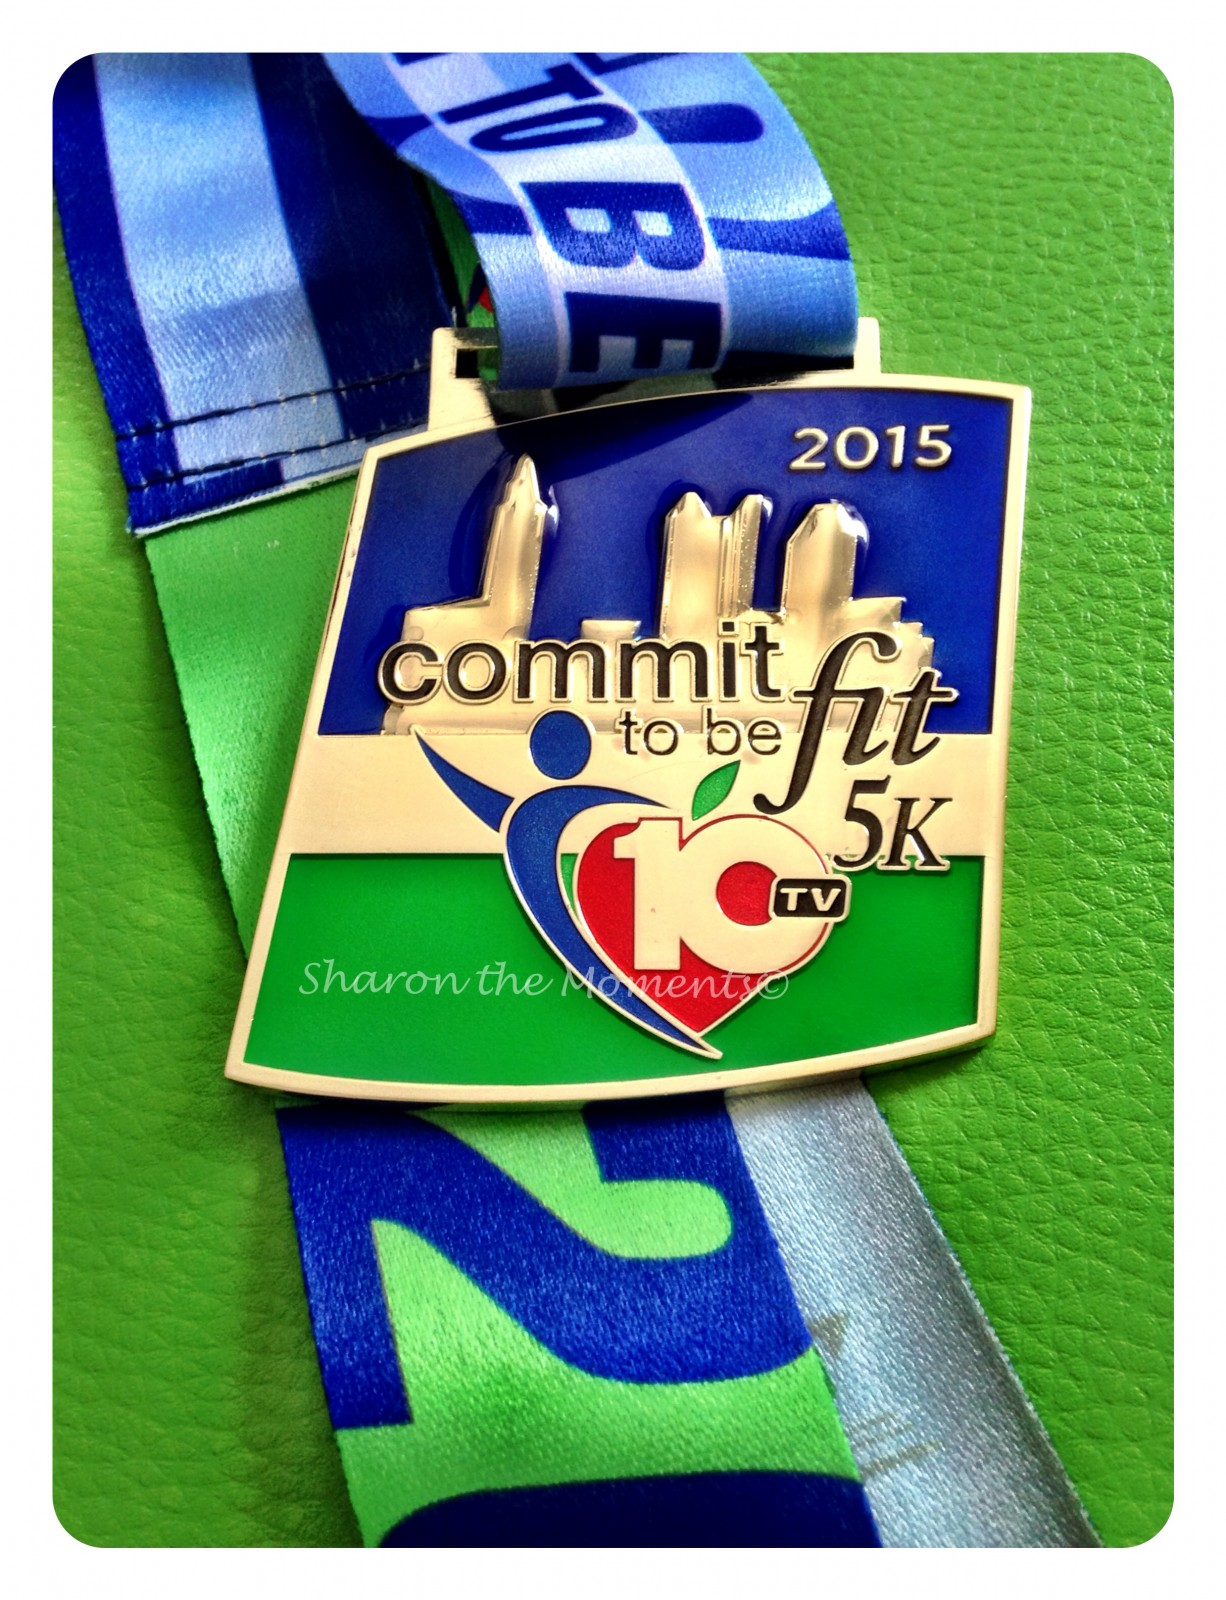 Cap City Half Marathon and 5K in Columbus OH|Sharon the Moments Blog